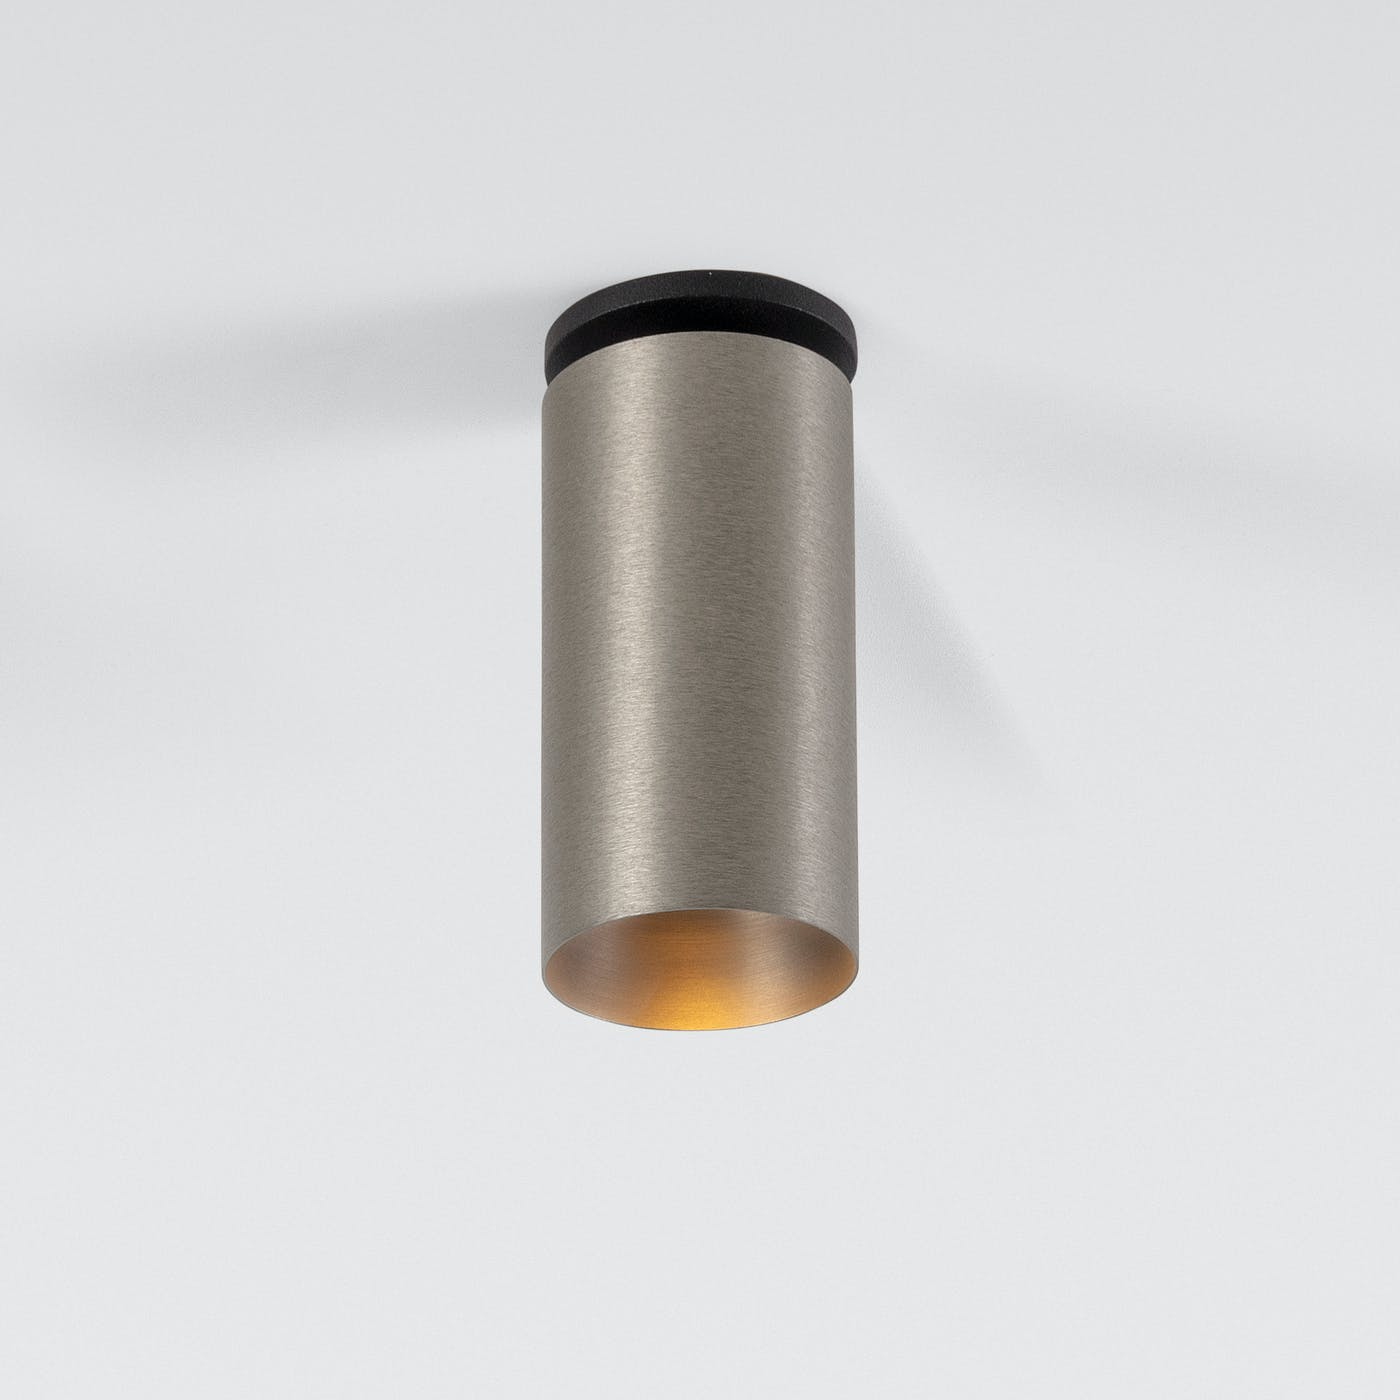 MODUPOINT RECESSED BLSTR MINUDE JACK SILVERBRONZE SQUARE